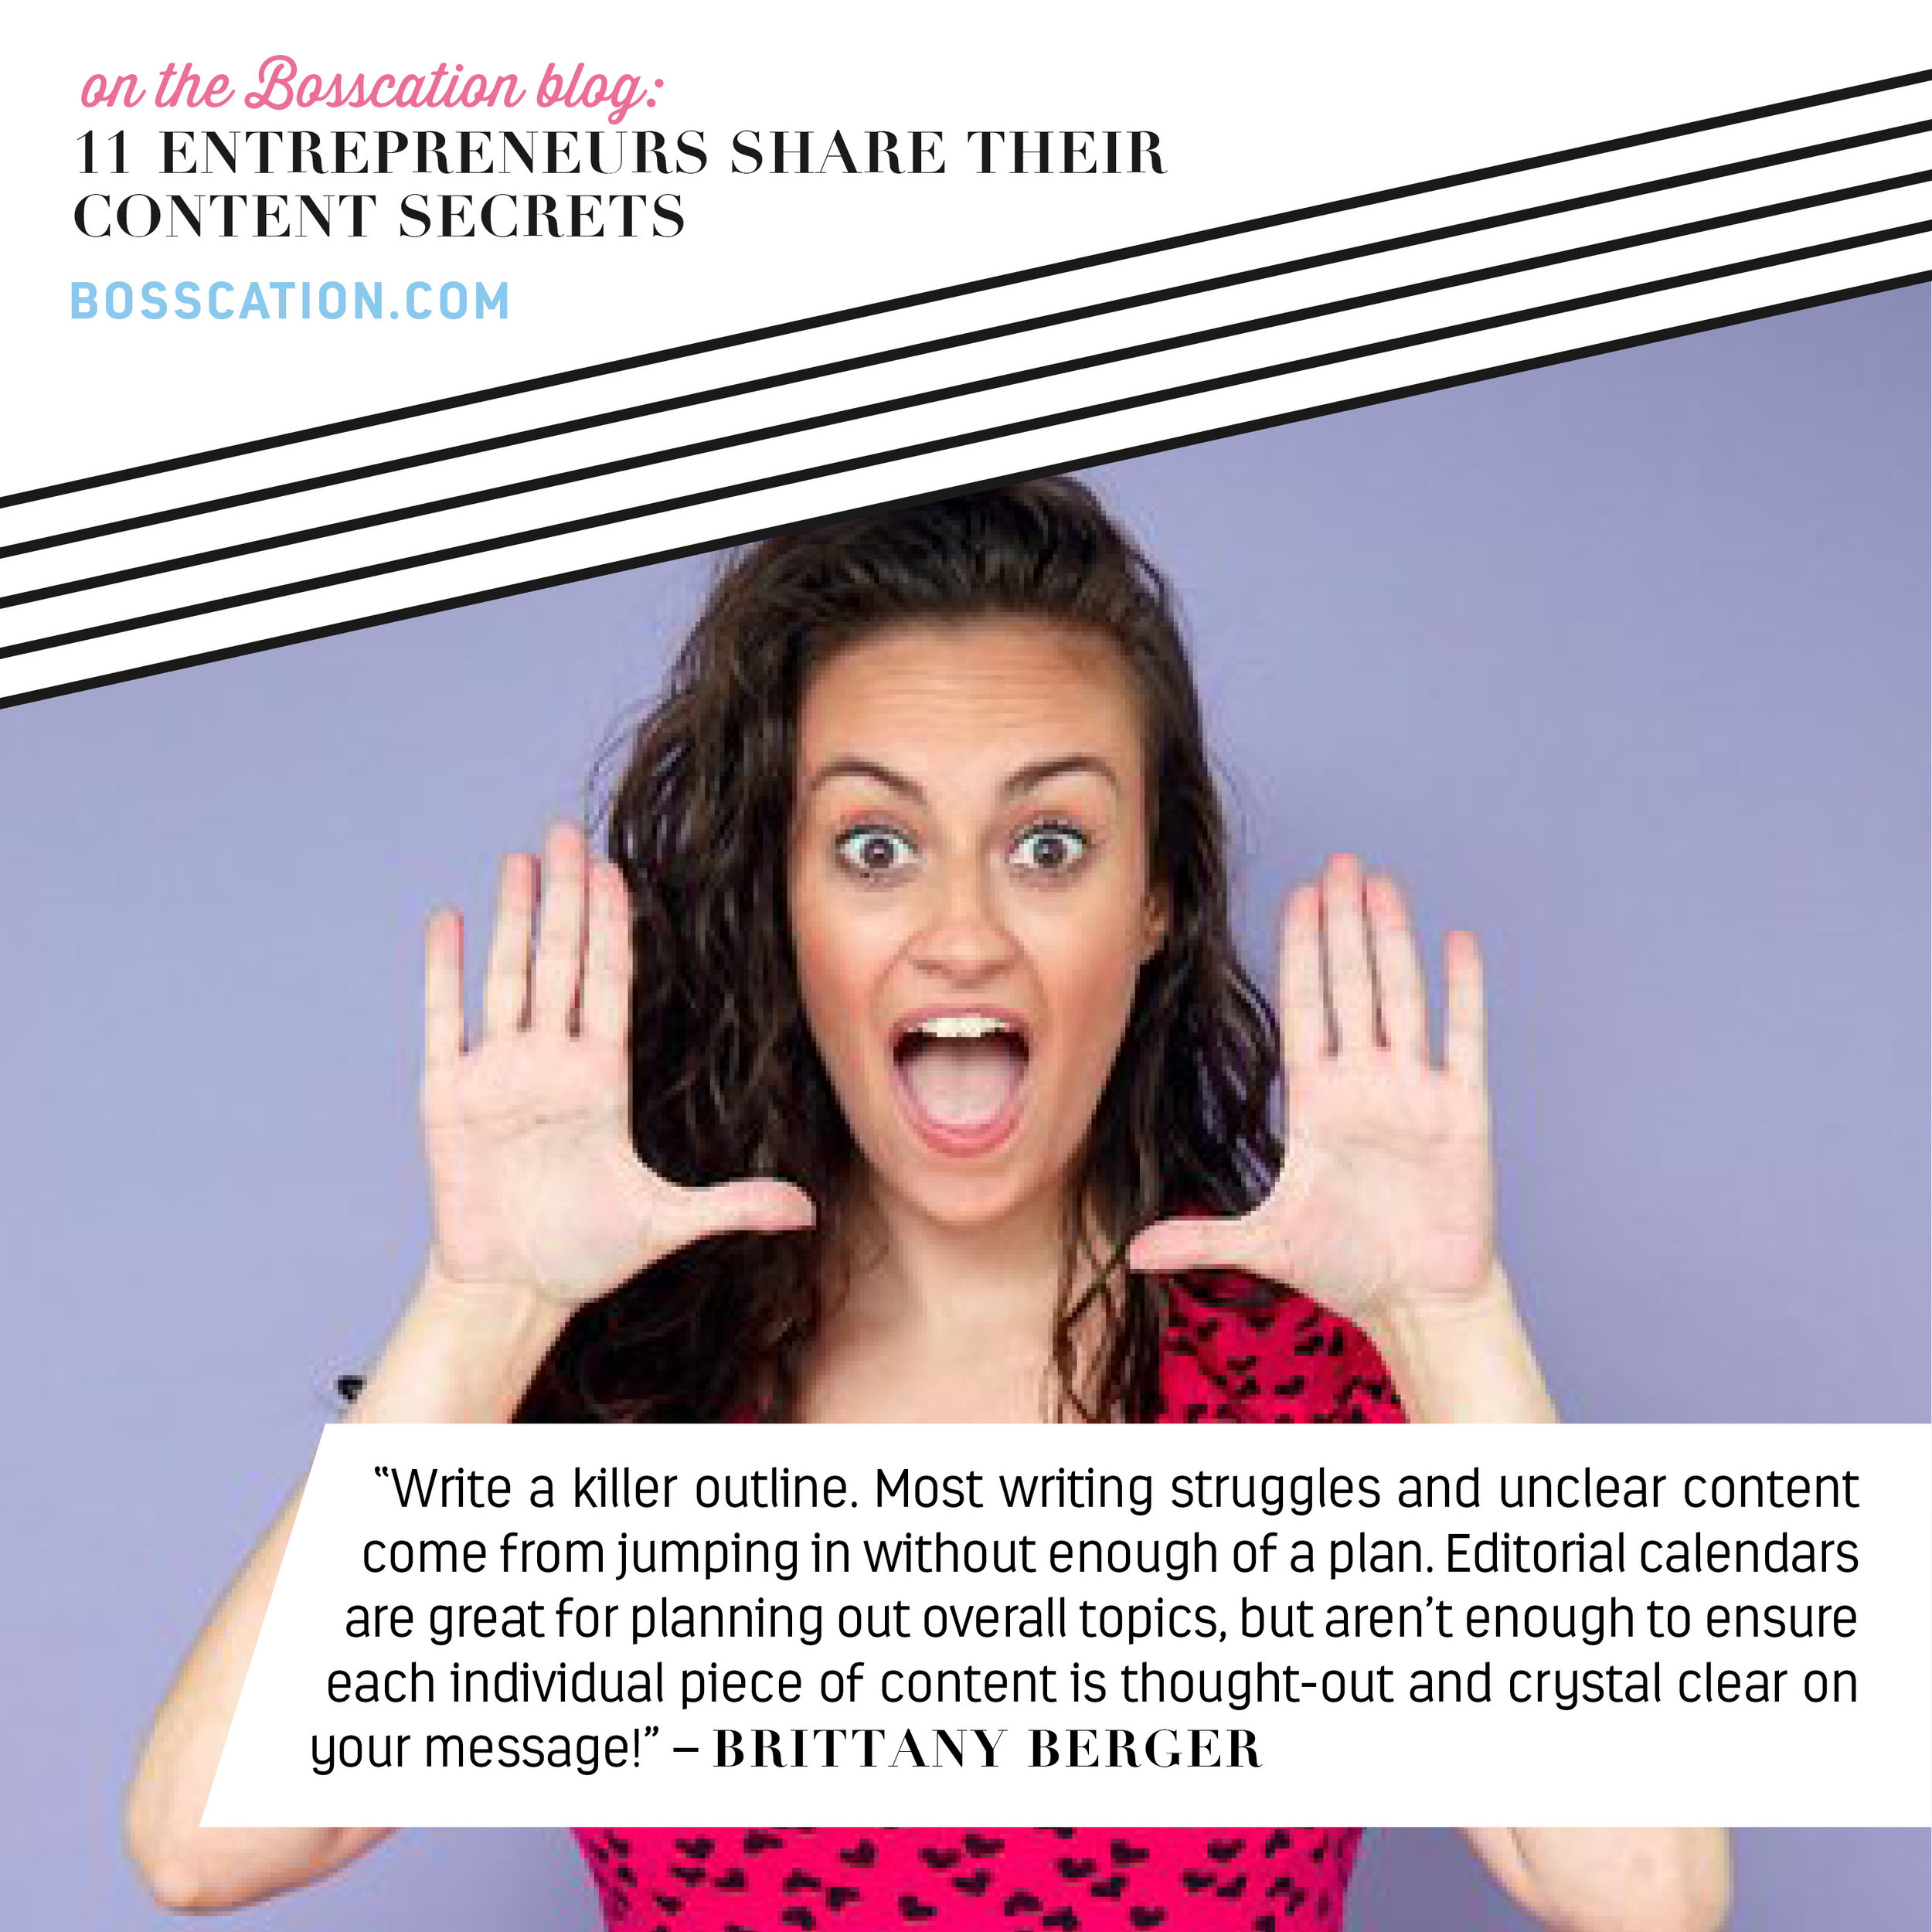 "Content Creation Blog Roundup: 11 Entrepreneurs Share Their Content Secrets. ""Write a killer outline. Most writing struggles and unclear content come from jumping in without enough of a plan. Editorial calendars are great for planning out overall topics, but aren't enough to ensure each individual piece of content is thought-out and crystal clear on your message!"" – Brittany Berger   #Content #SmallBusinessBlogging #Blogging #EntrepreneurBlog"